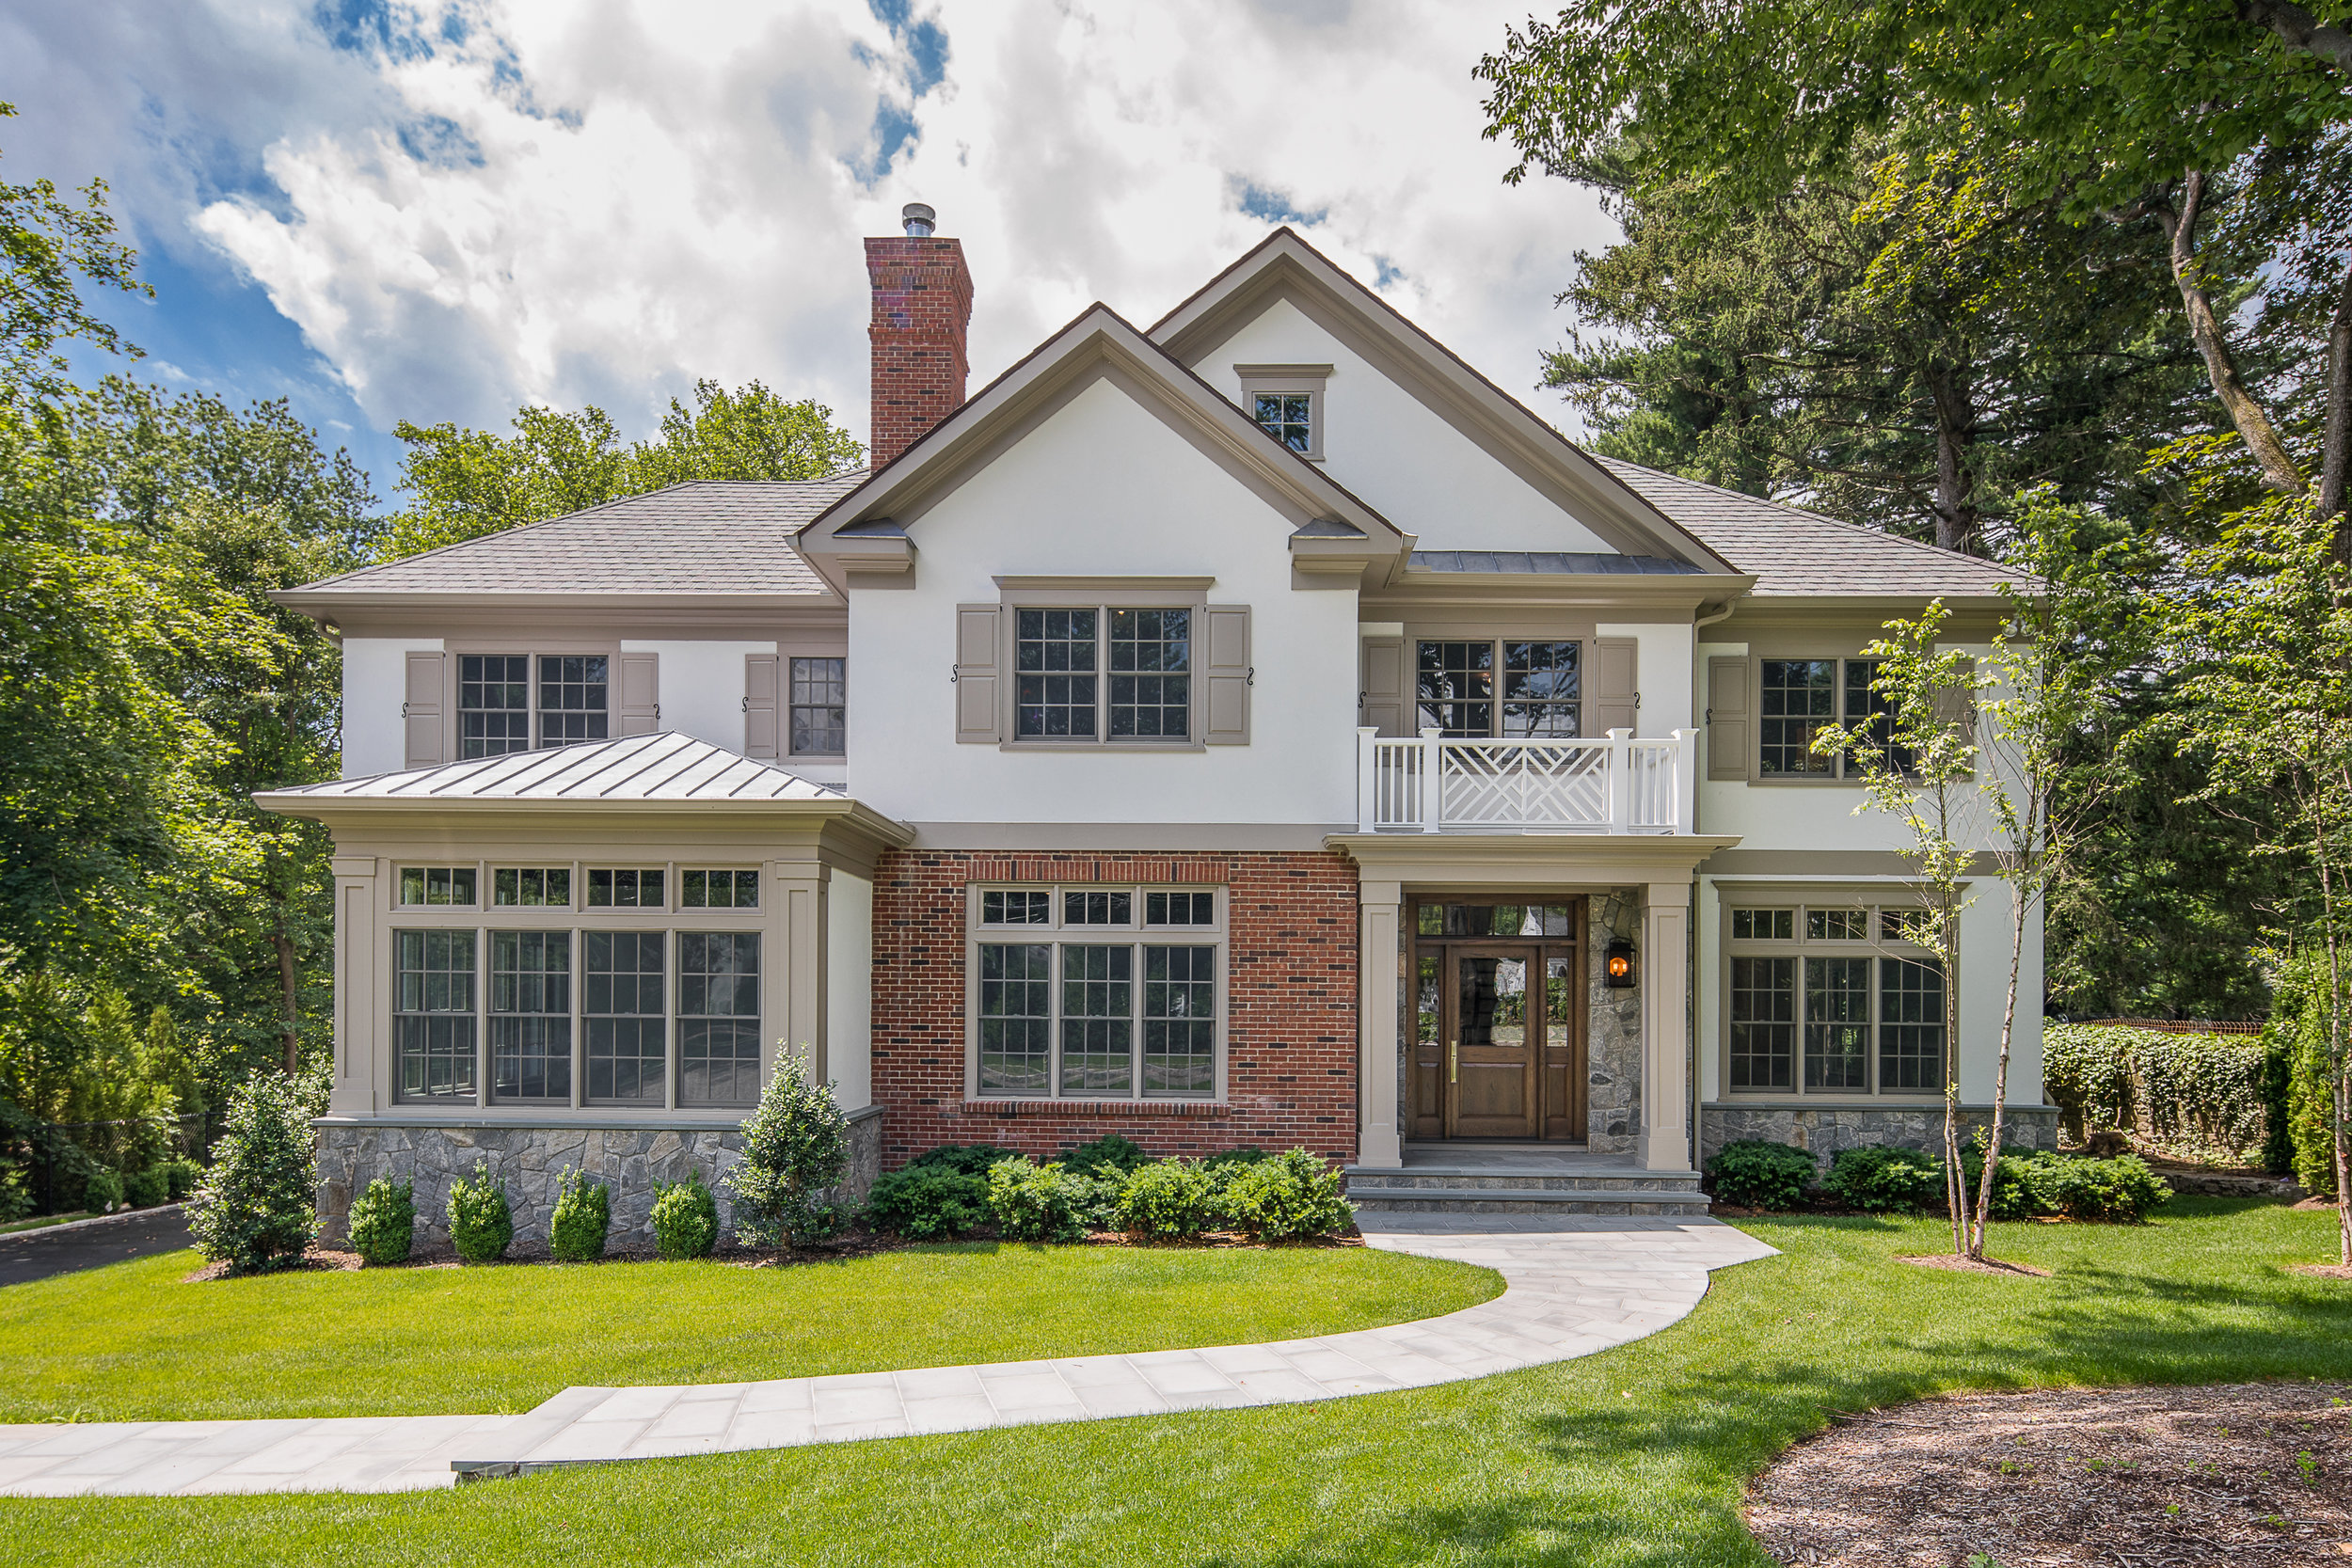 LISTED & SOLD  16 Fenimore Road Scarsdale, NY   Exceptional New Construction in Sought-After Fox Meadow. Represented the Seller as the Listing Agent & Represented the Buyer  (2017)